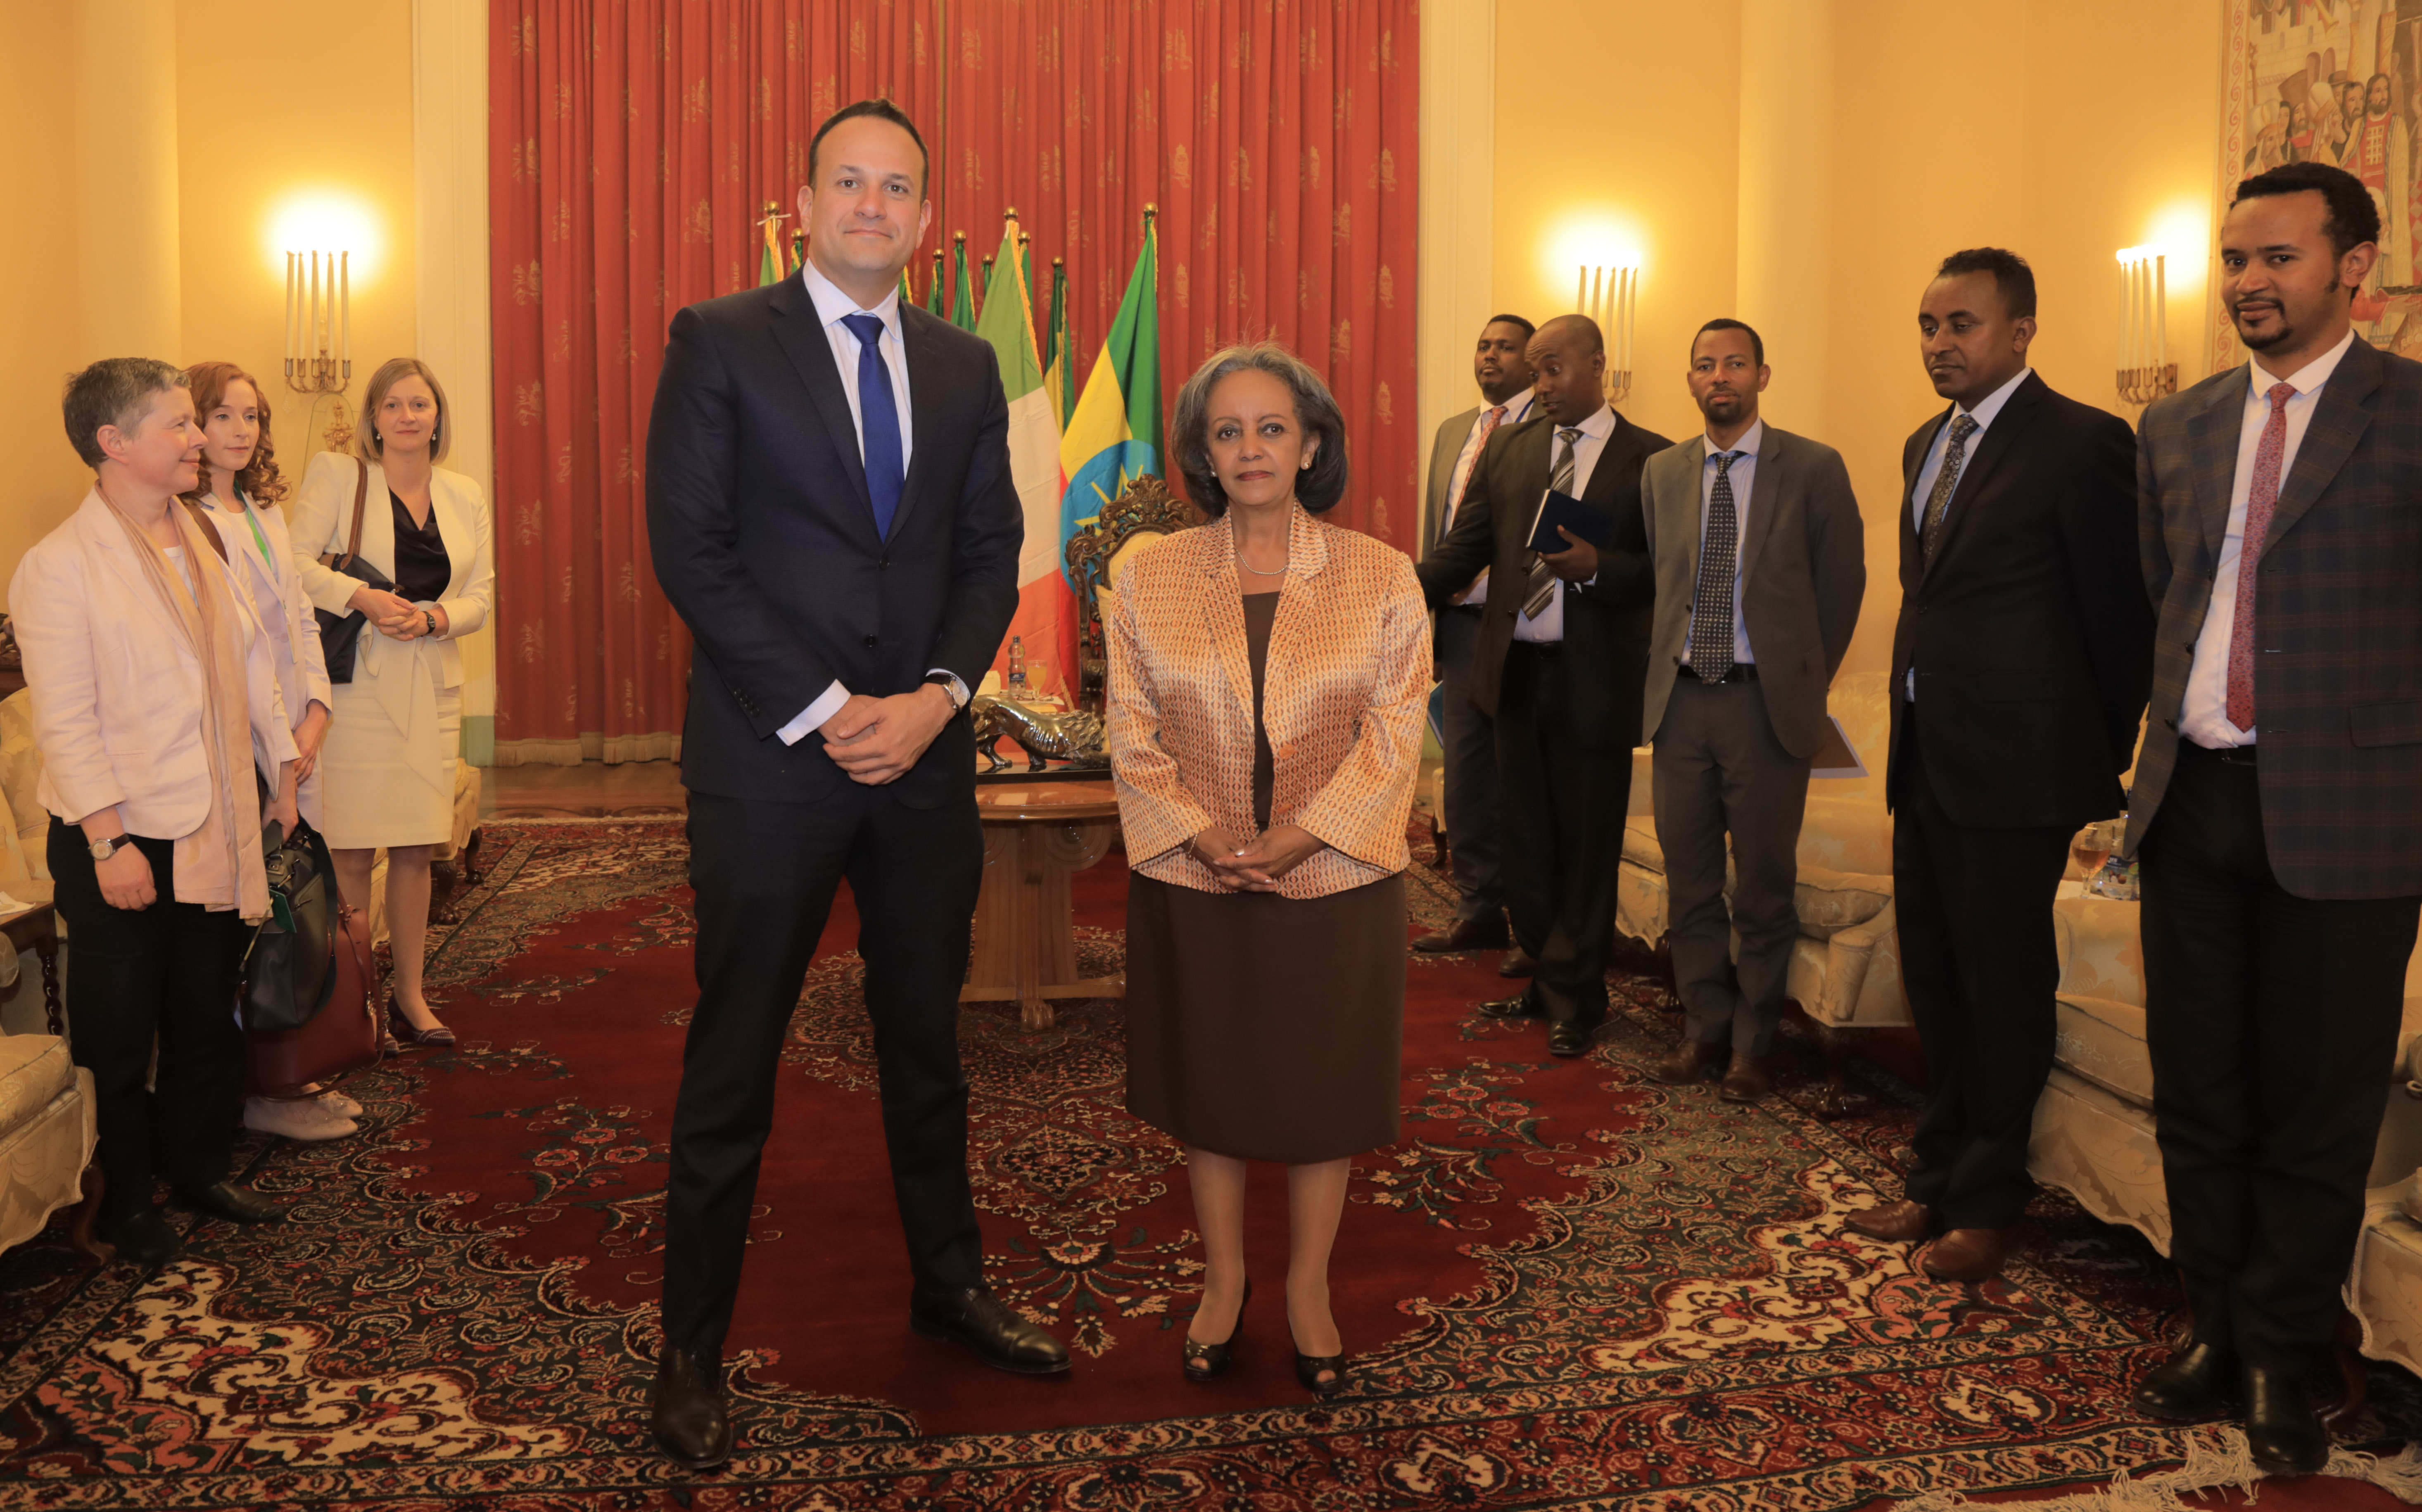 An Taoiseach meeting the President of Ethiopia